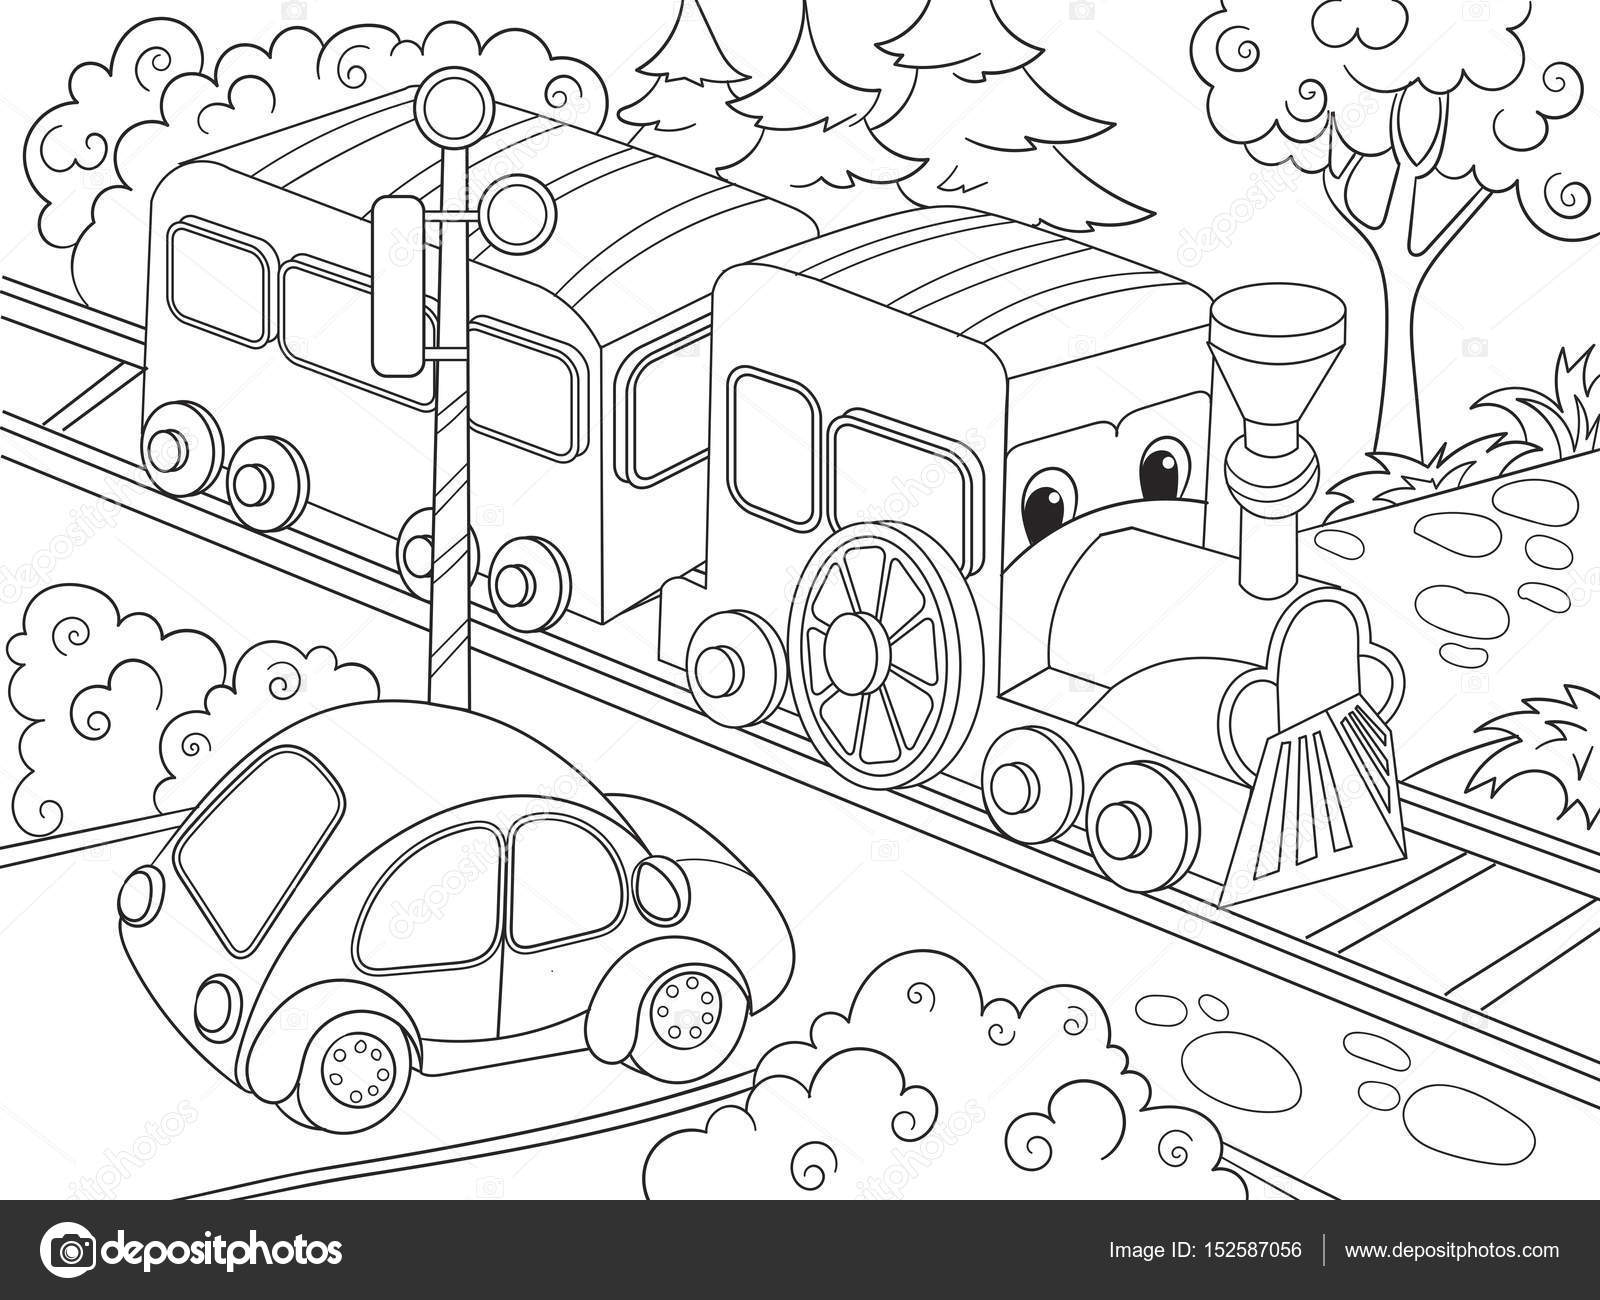 Cartoon Train And Car Coloring Book For Children